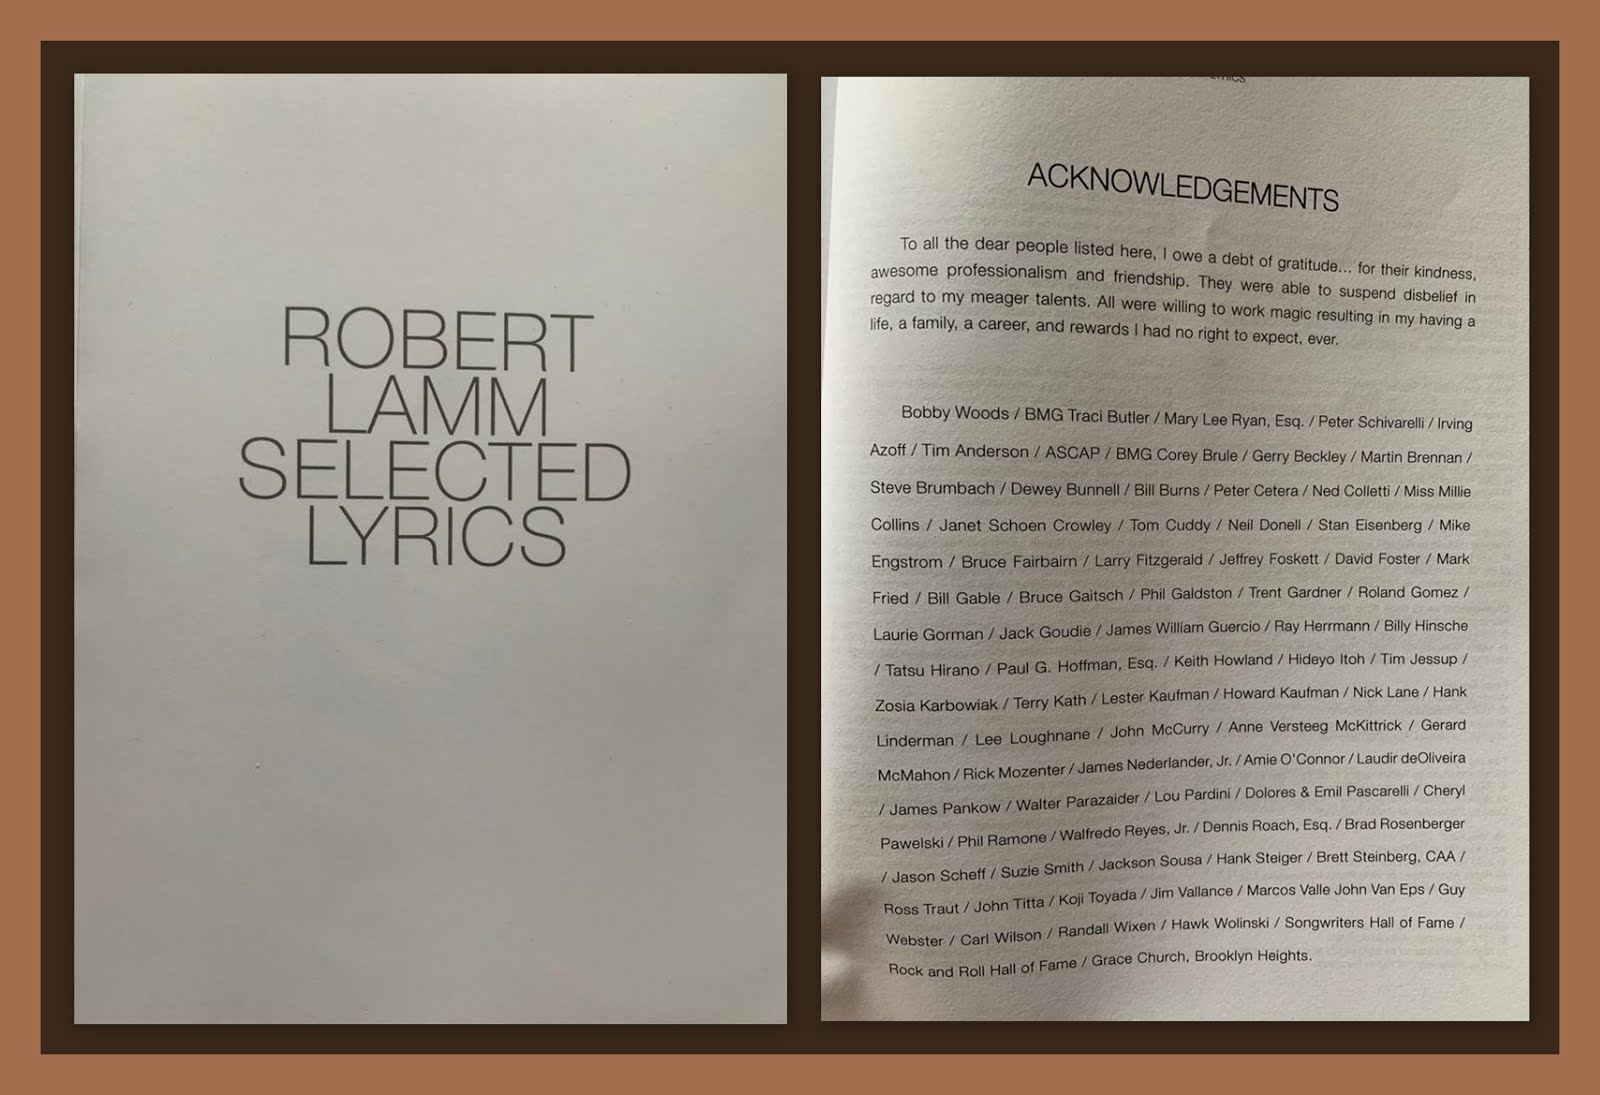 Robert Lamm Selected Lyrics - Click Photo To Purchase!